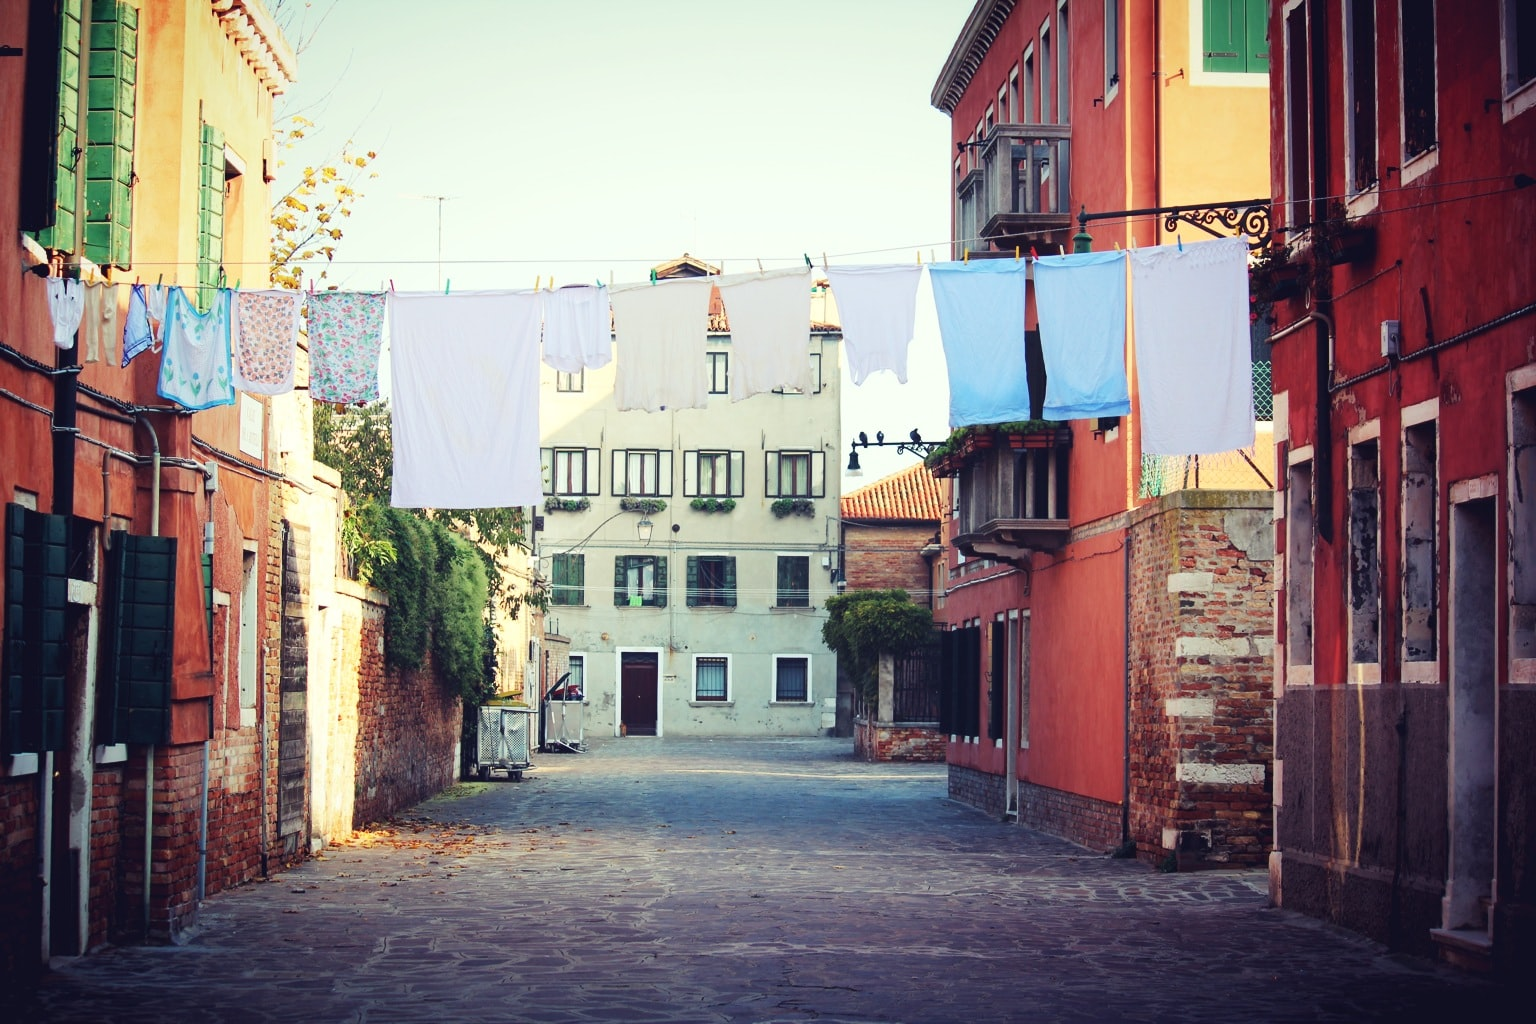 Street-view of colorful houses with clotheslines full of drying clothes across the street